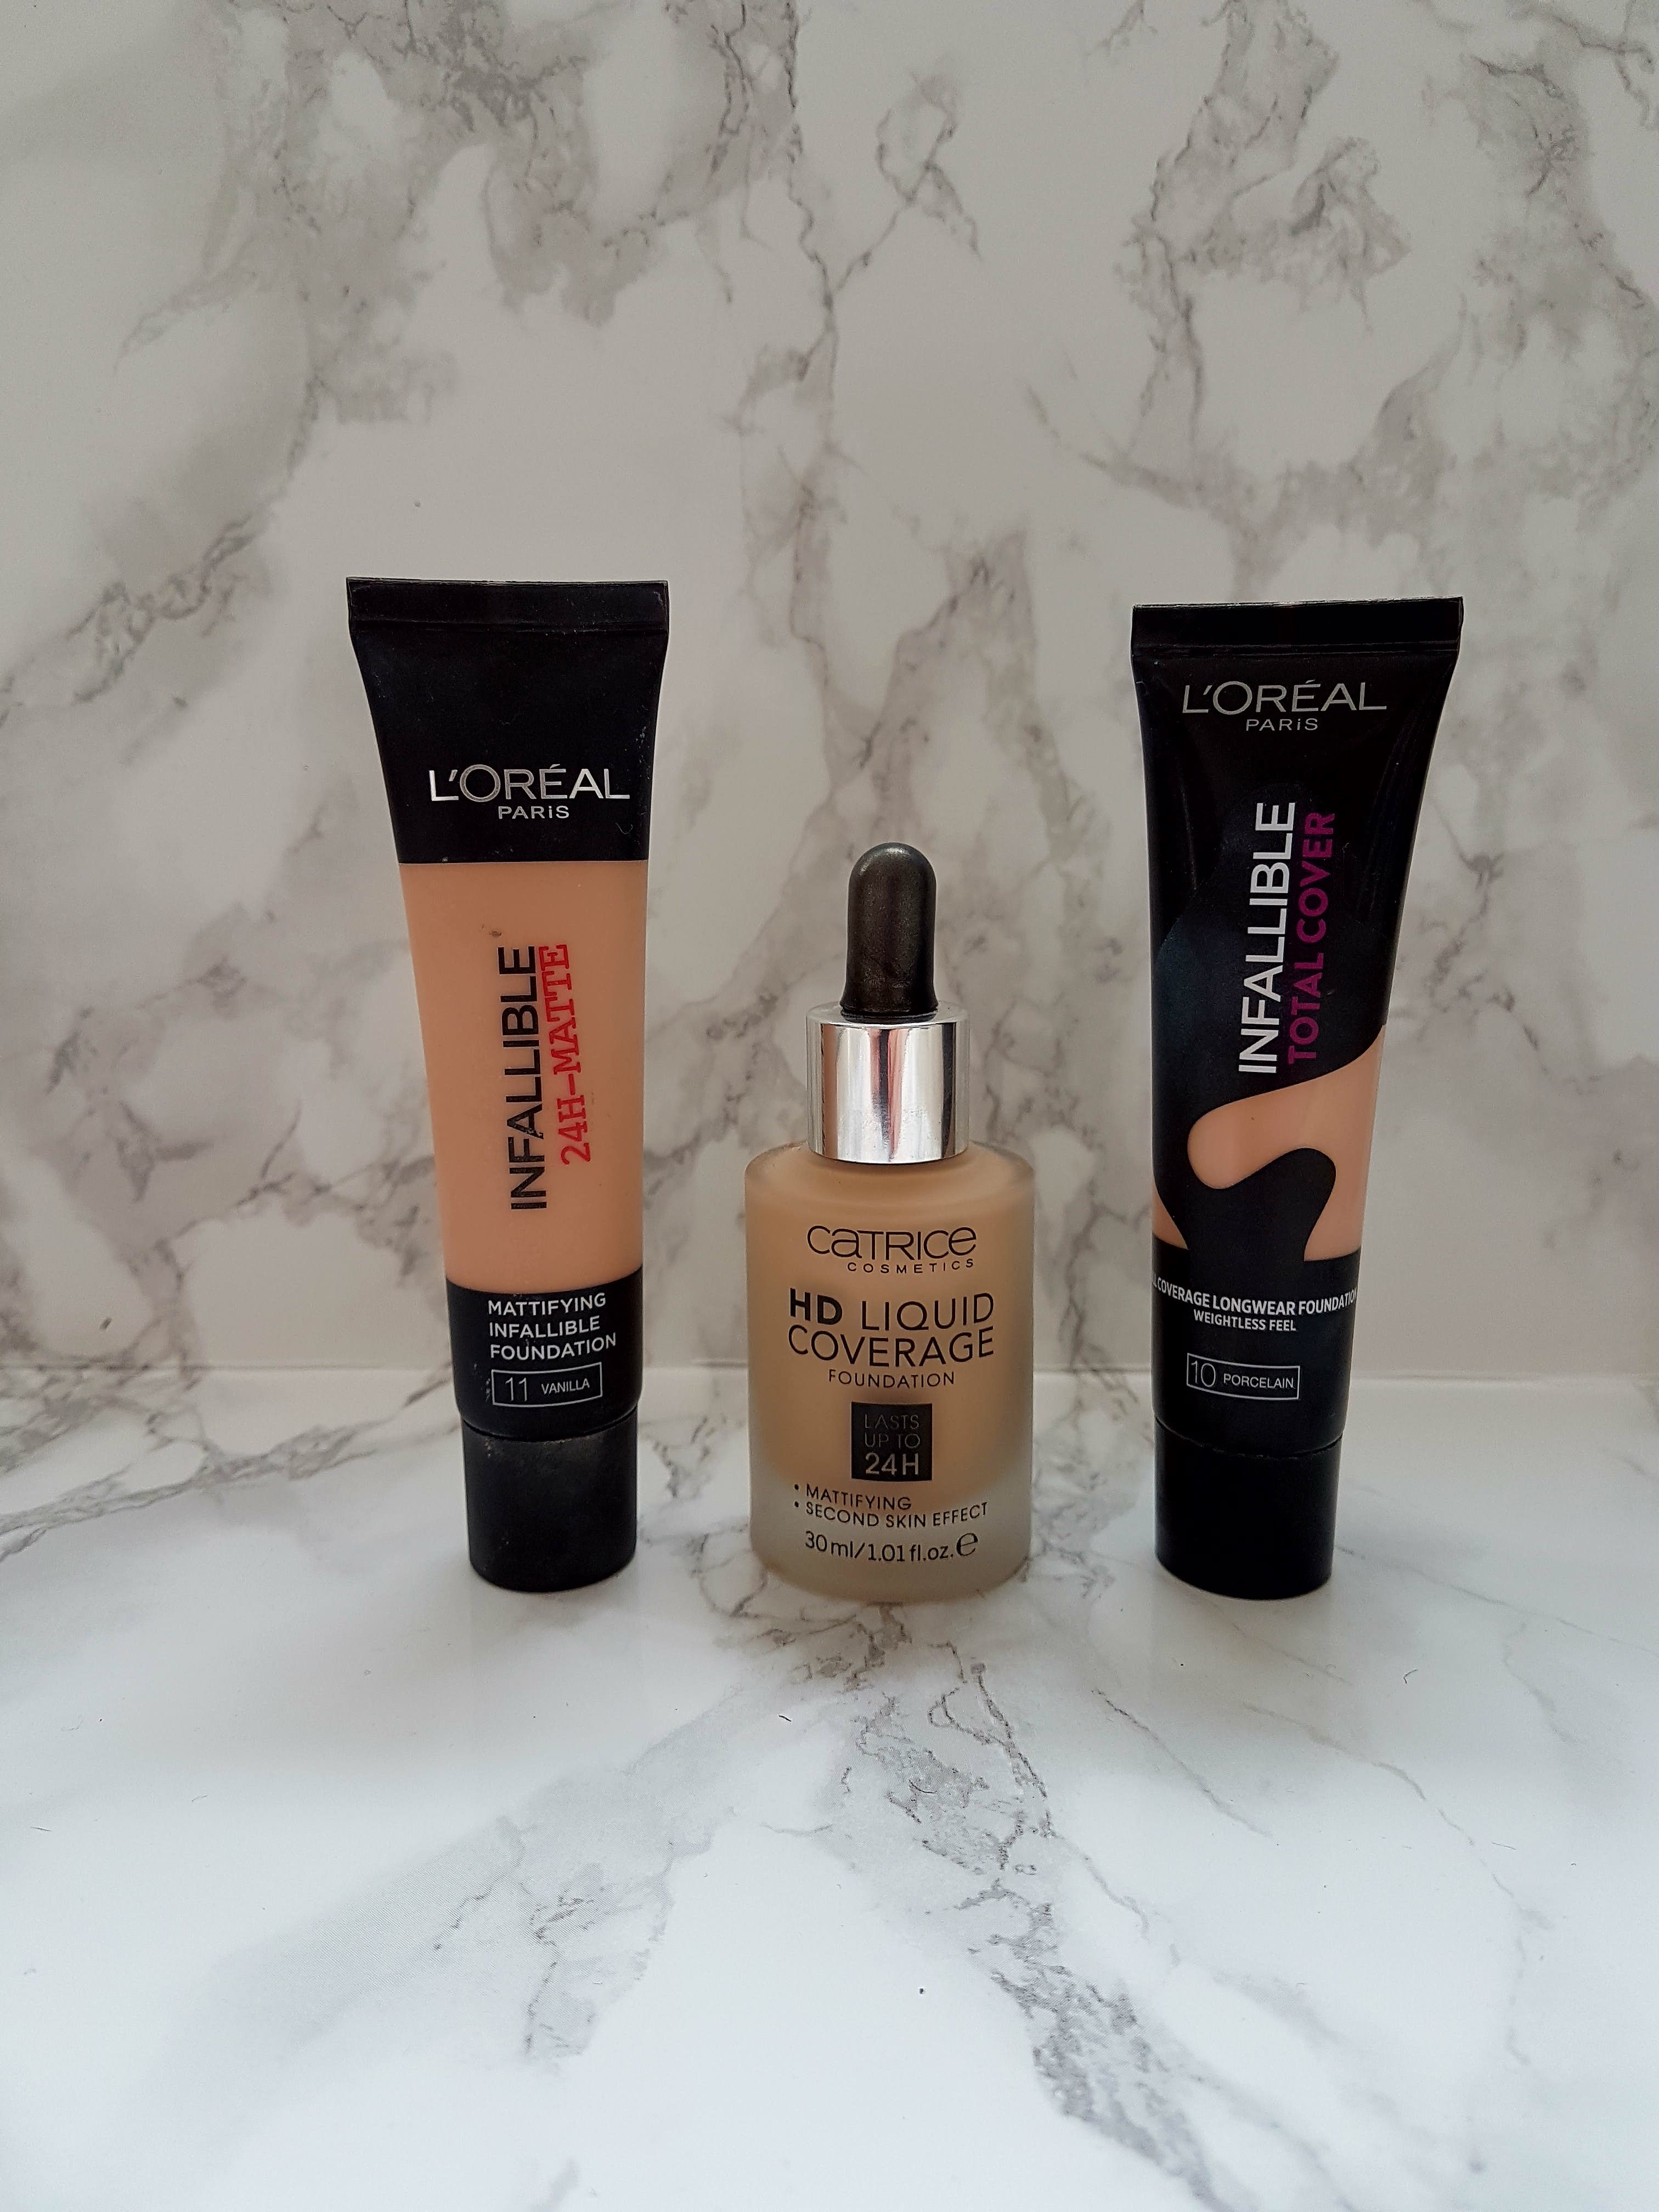 My Top Three Matte Foundations Orla The Irish Mammy Foundation I Am Always On Hunt For A Good That Has Both Coverage And Staying Power But Most Importantly It Must Keep Skin Shine Free